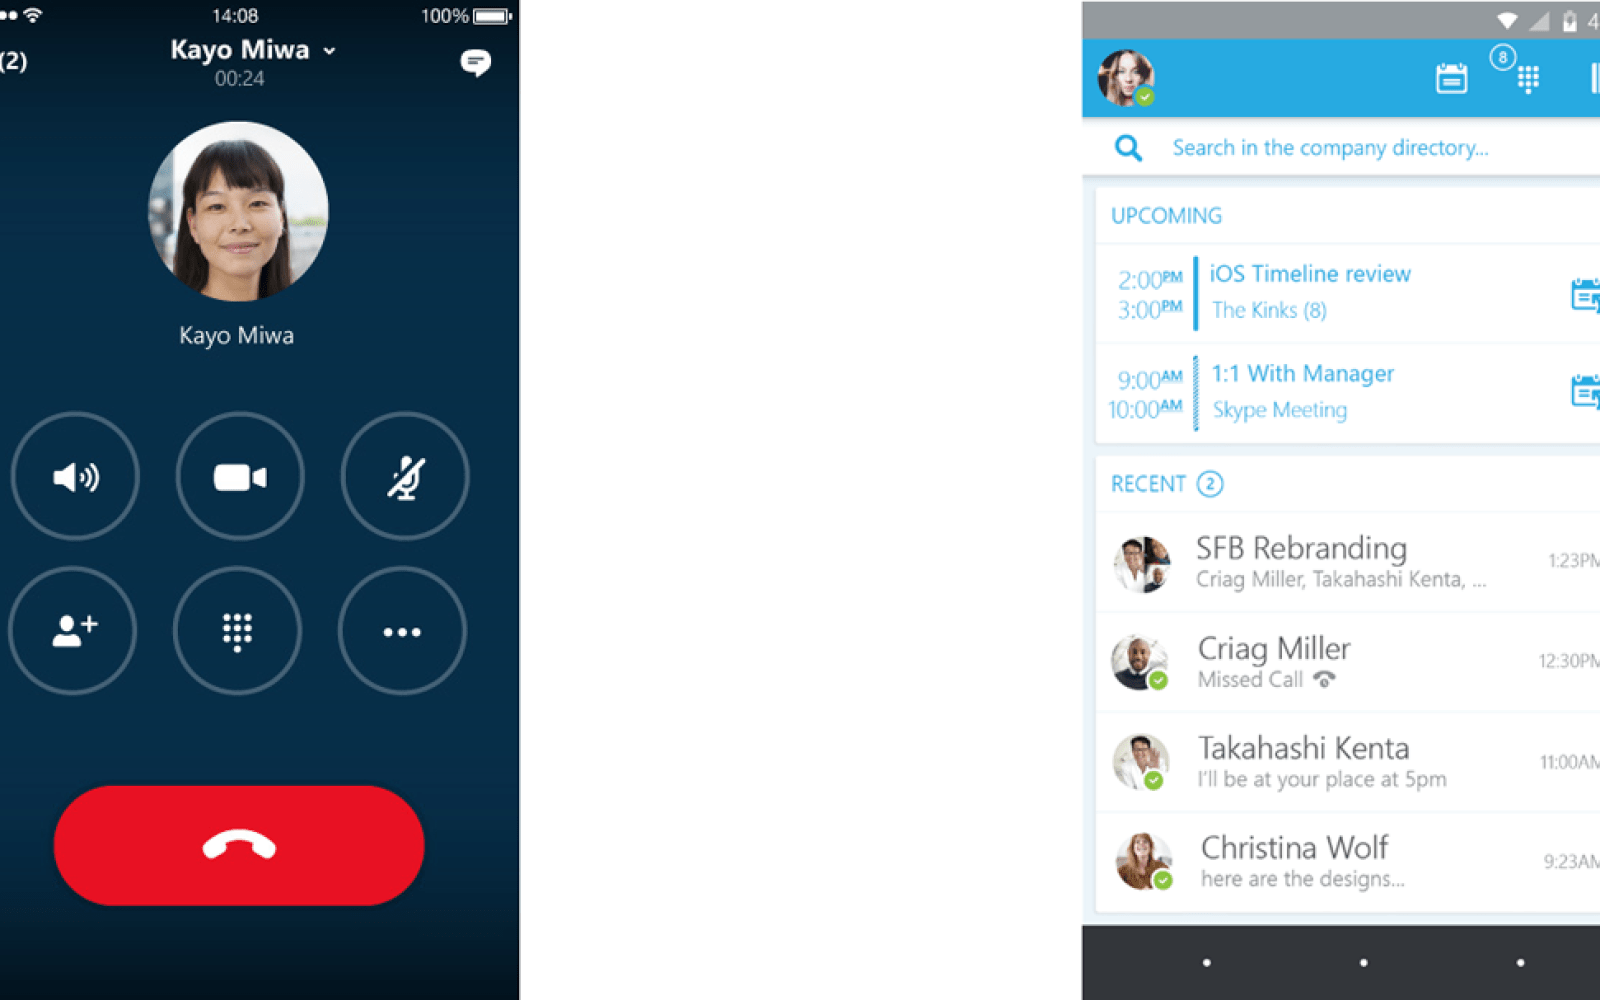 Microsoft announces preview of new Skype for Business iOS app with simplified UI & better navigation